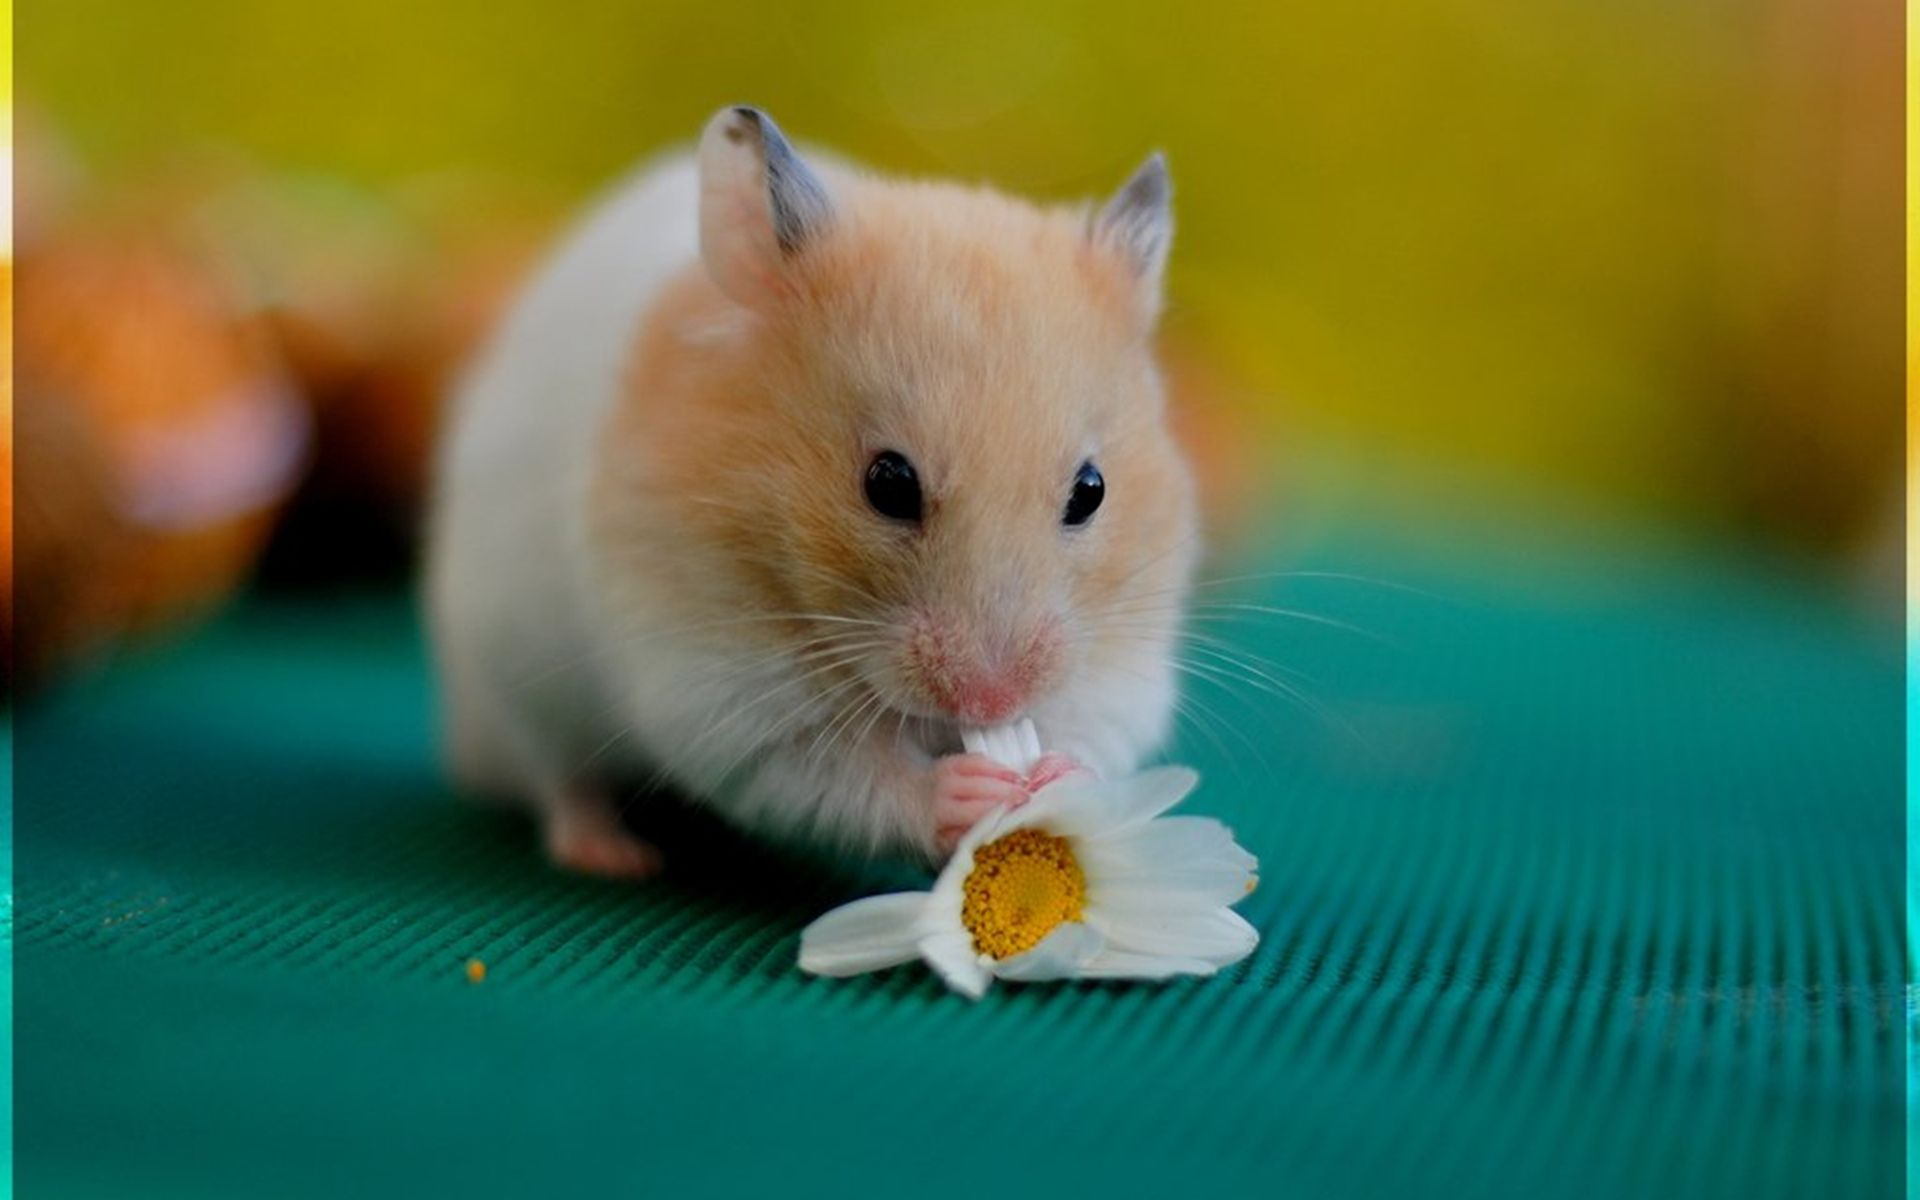 Cute Hamster 1920x1200 Wallpapers 1920x1200 Wallpapers Pictures Free Download Cute Hamsters Funny Hamsters Dwarf Hamster Care